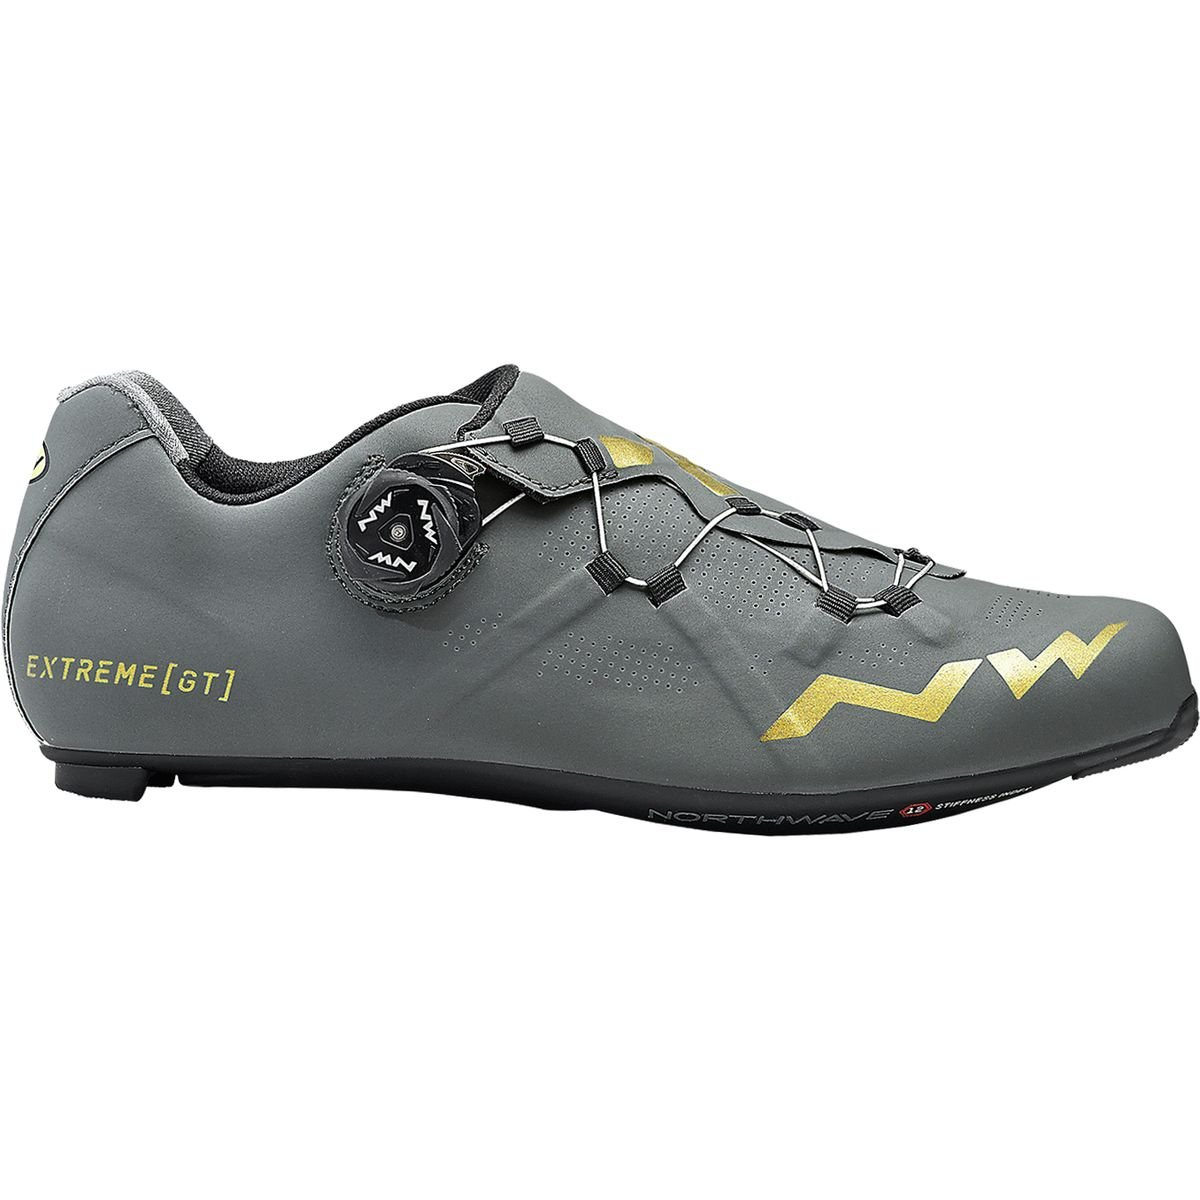 Northwave Extreme GT Cycling Shoe – Men 's Anthracite/ゴールド、43.0   B07D3TJDL3